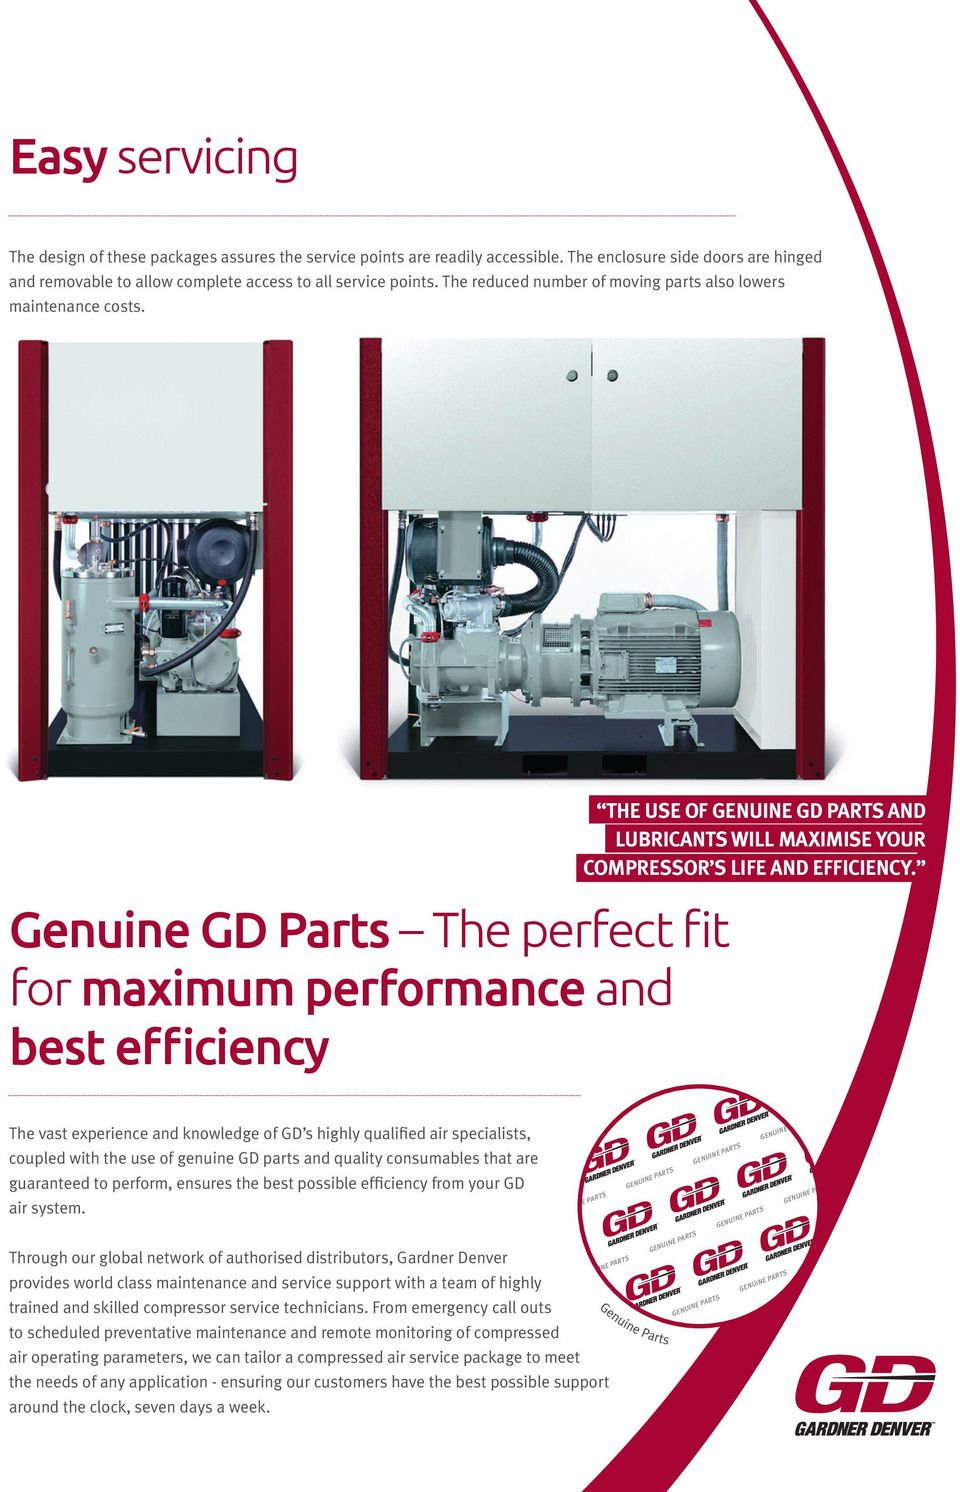 Genuine GD Parts The perfect fit for maximum performance and best efficiency the use of genuine GD parts and lubricants will maximise your compressor s life and efficiency.